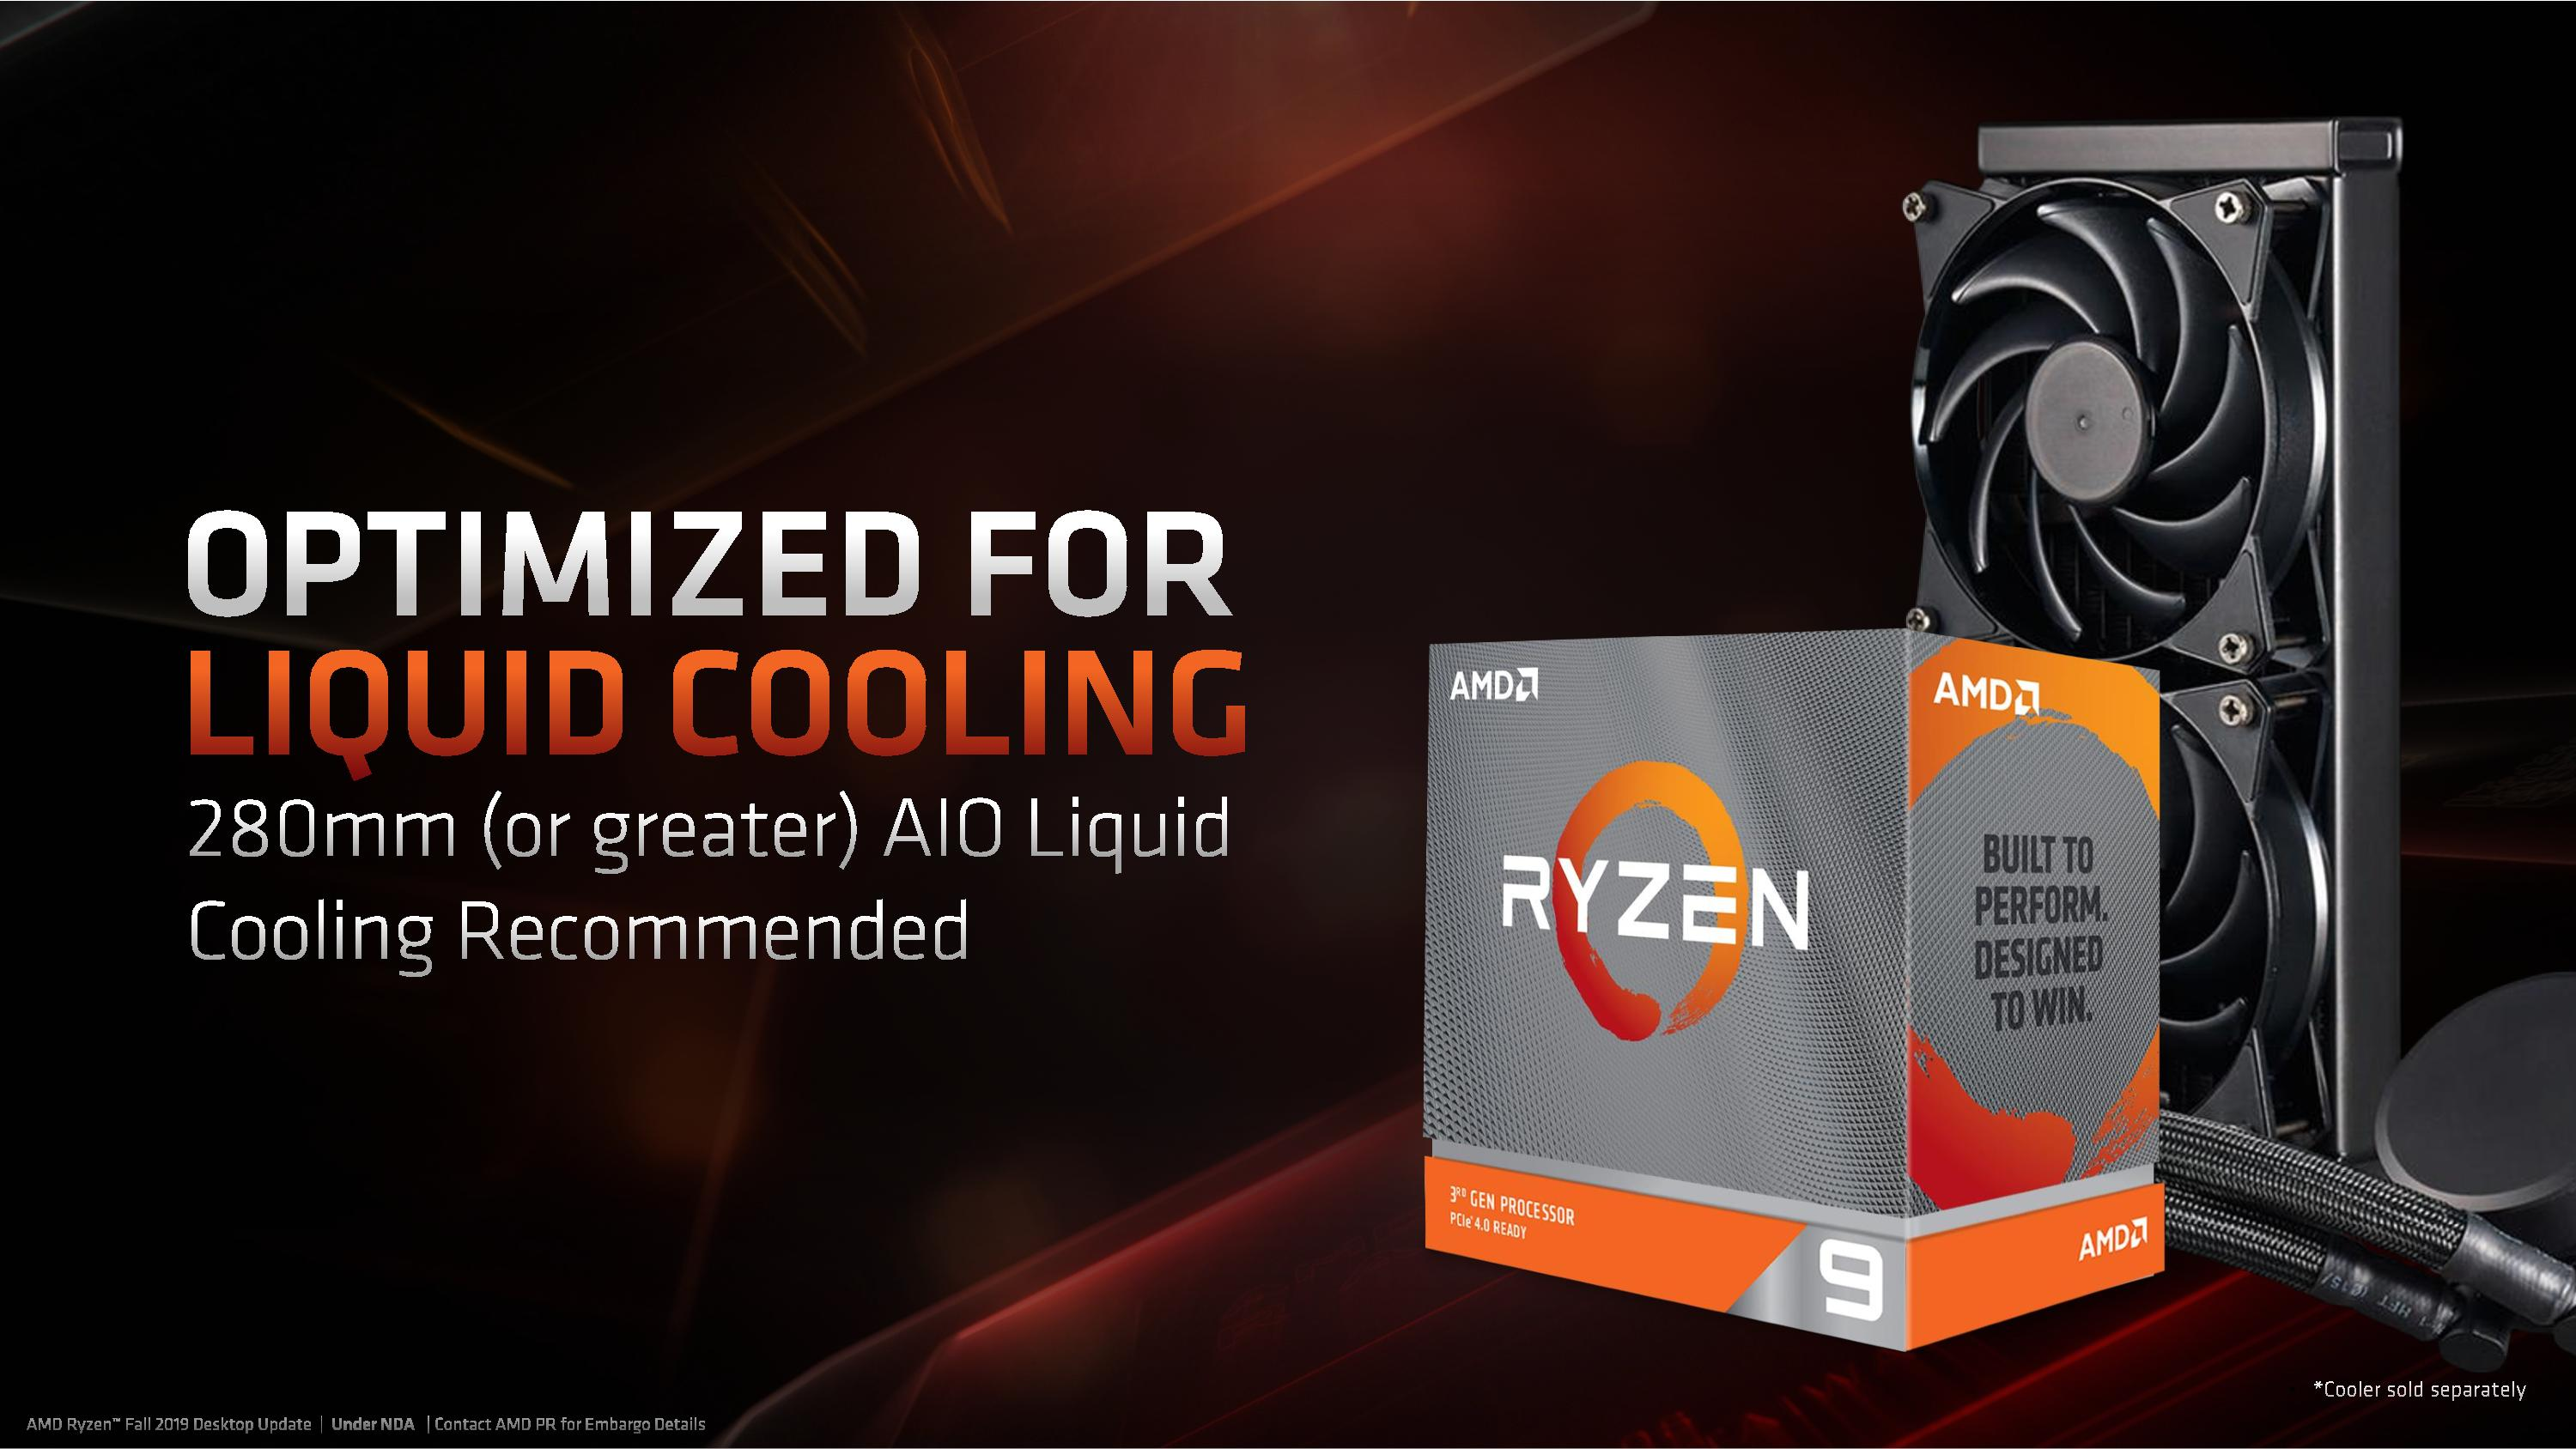 Optimized for Liquid Cooling